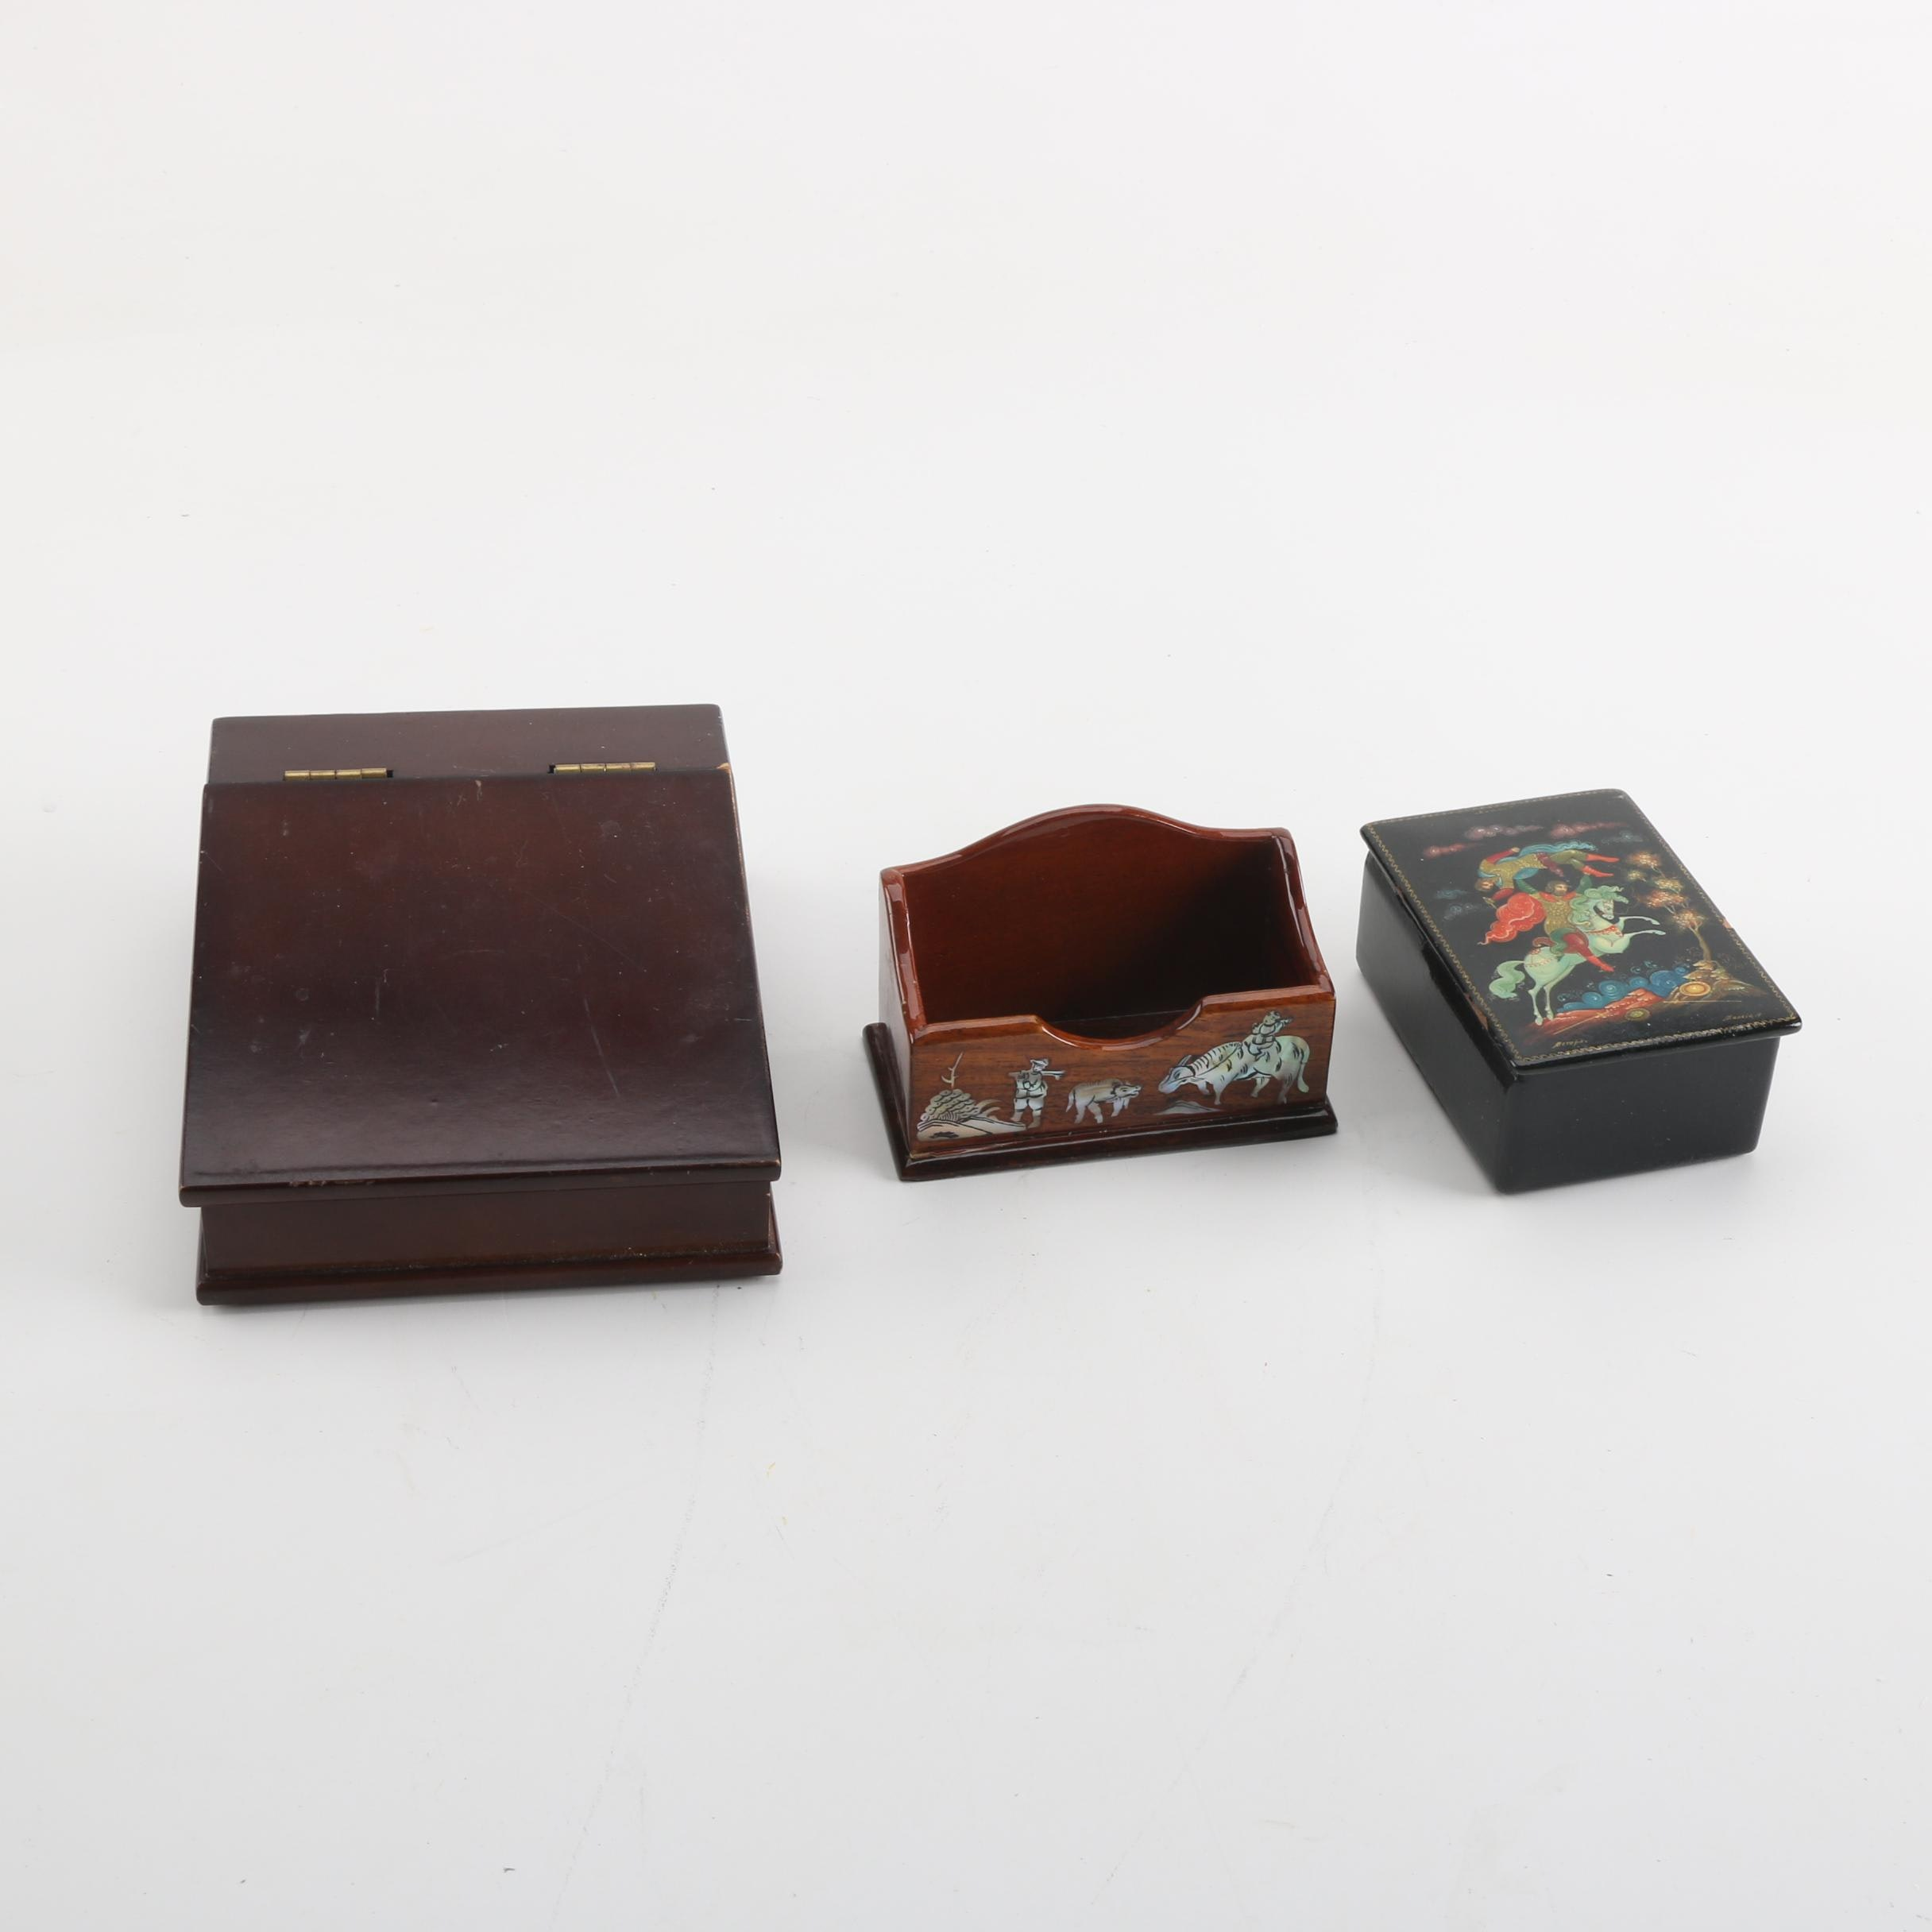 Wooden Boxes Including Hand-Painted Russian Lacquer Box